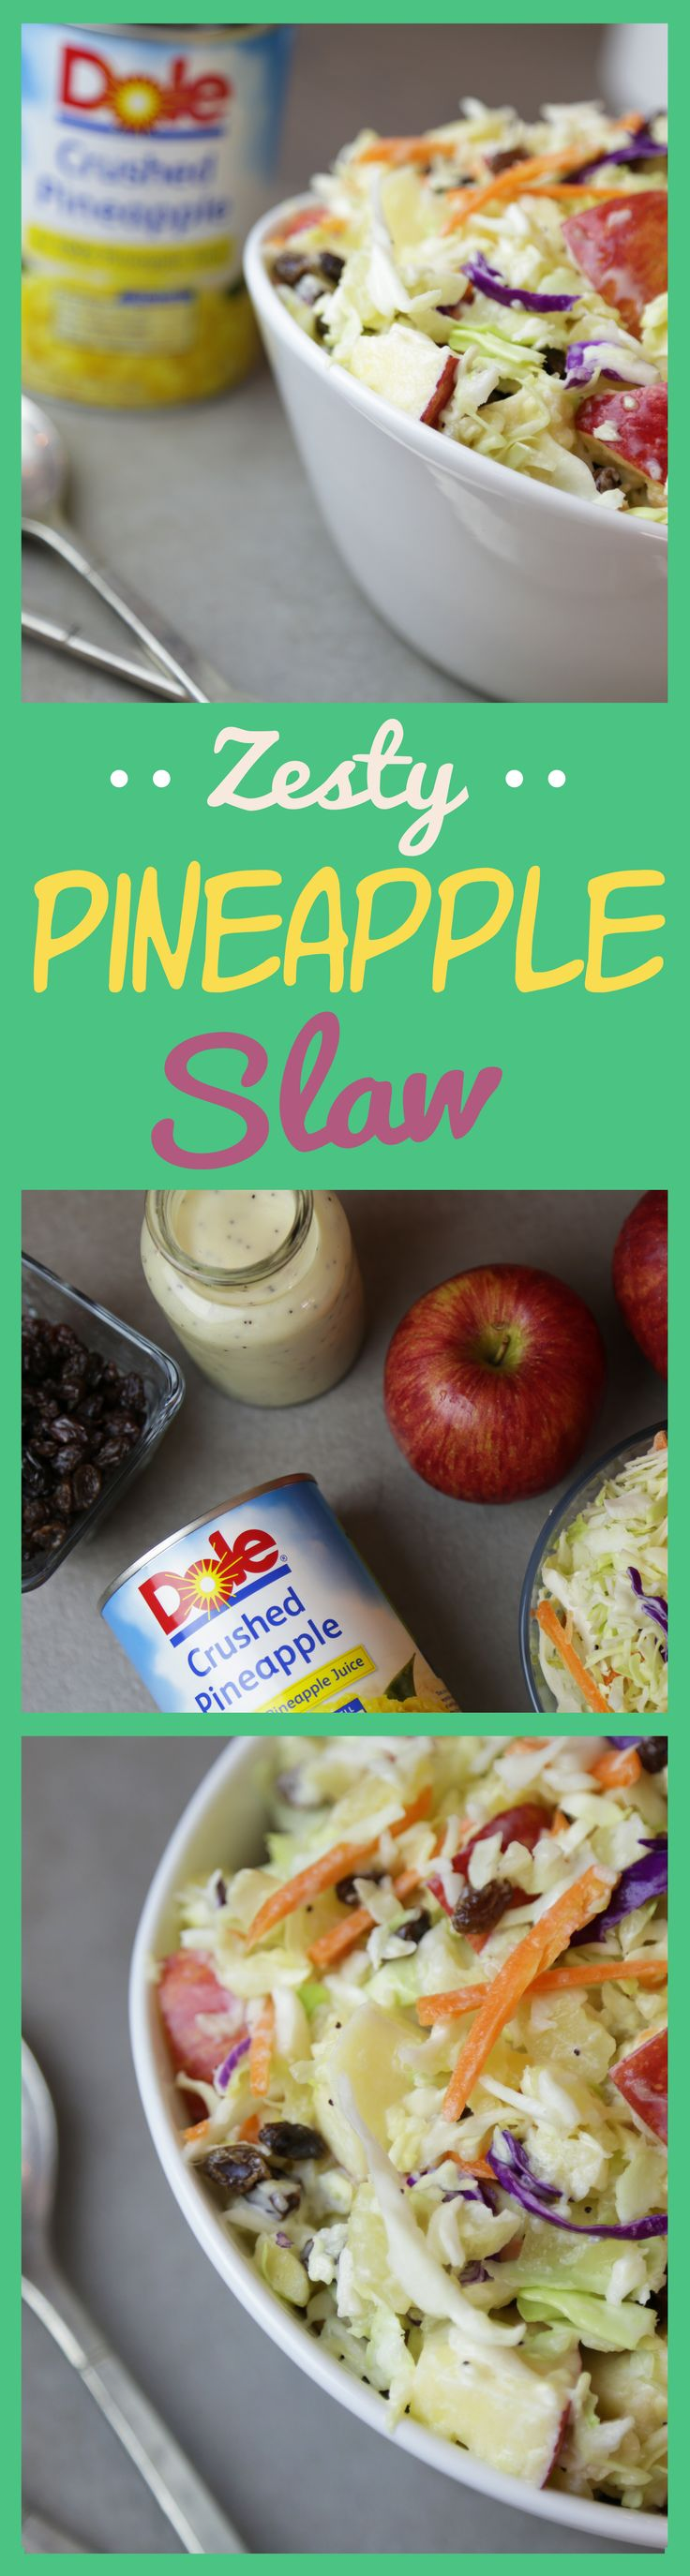 Creamy and tangy coleslaw with DOLE® Canned Pineapple makes a great side dish or addition to chicken or pork.